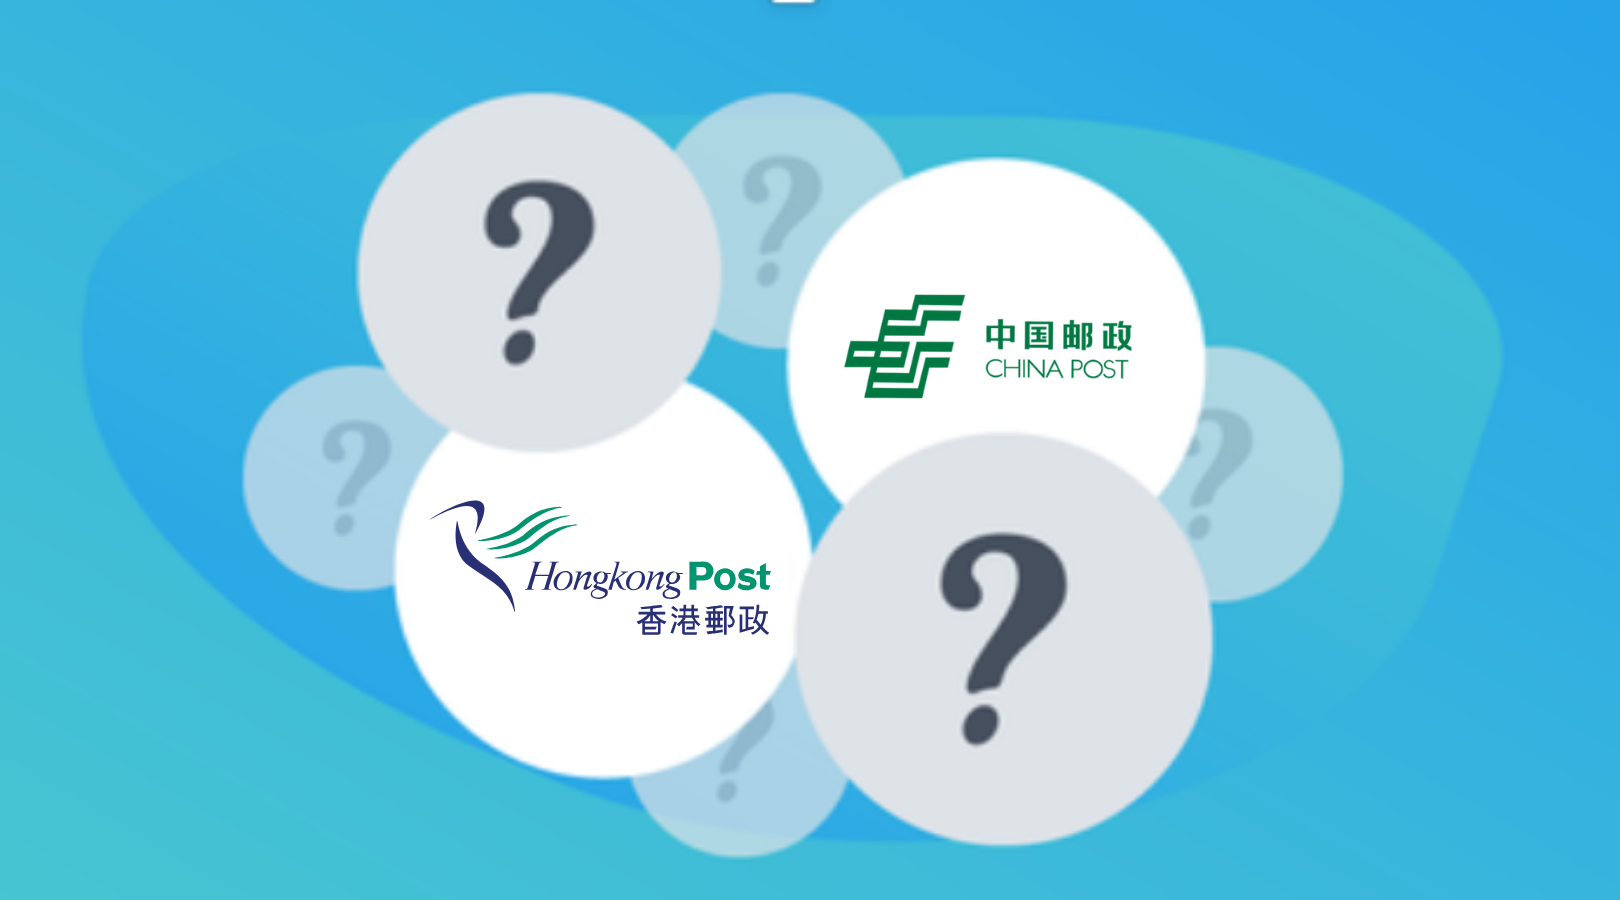 China Post vs. Hong Kong Post: Which is Better for Fulfillment?